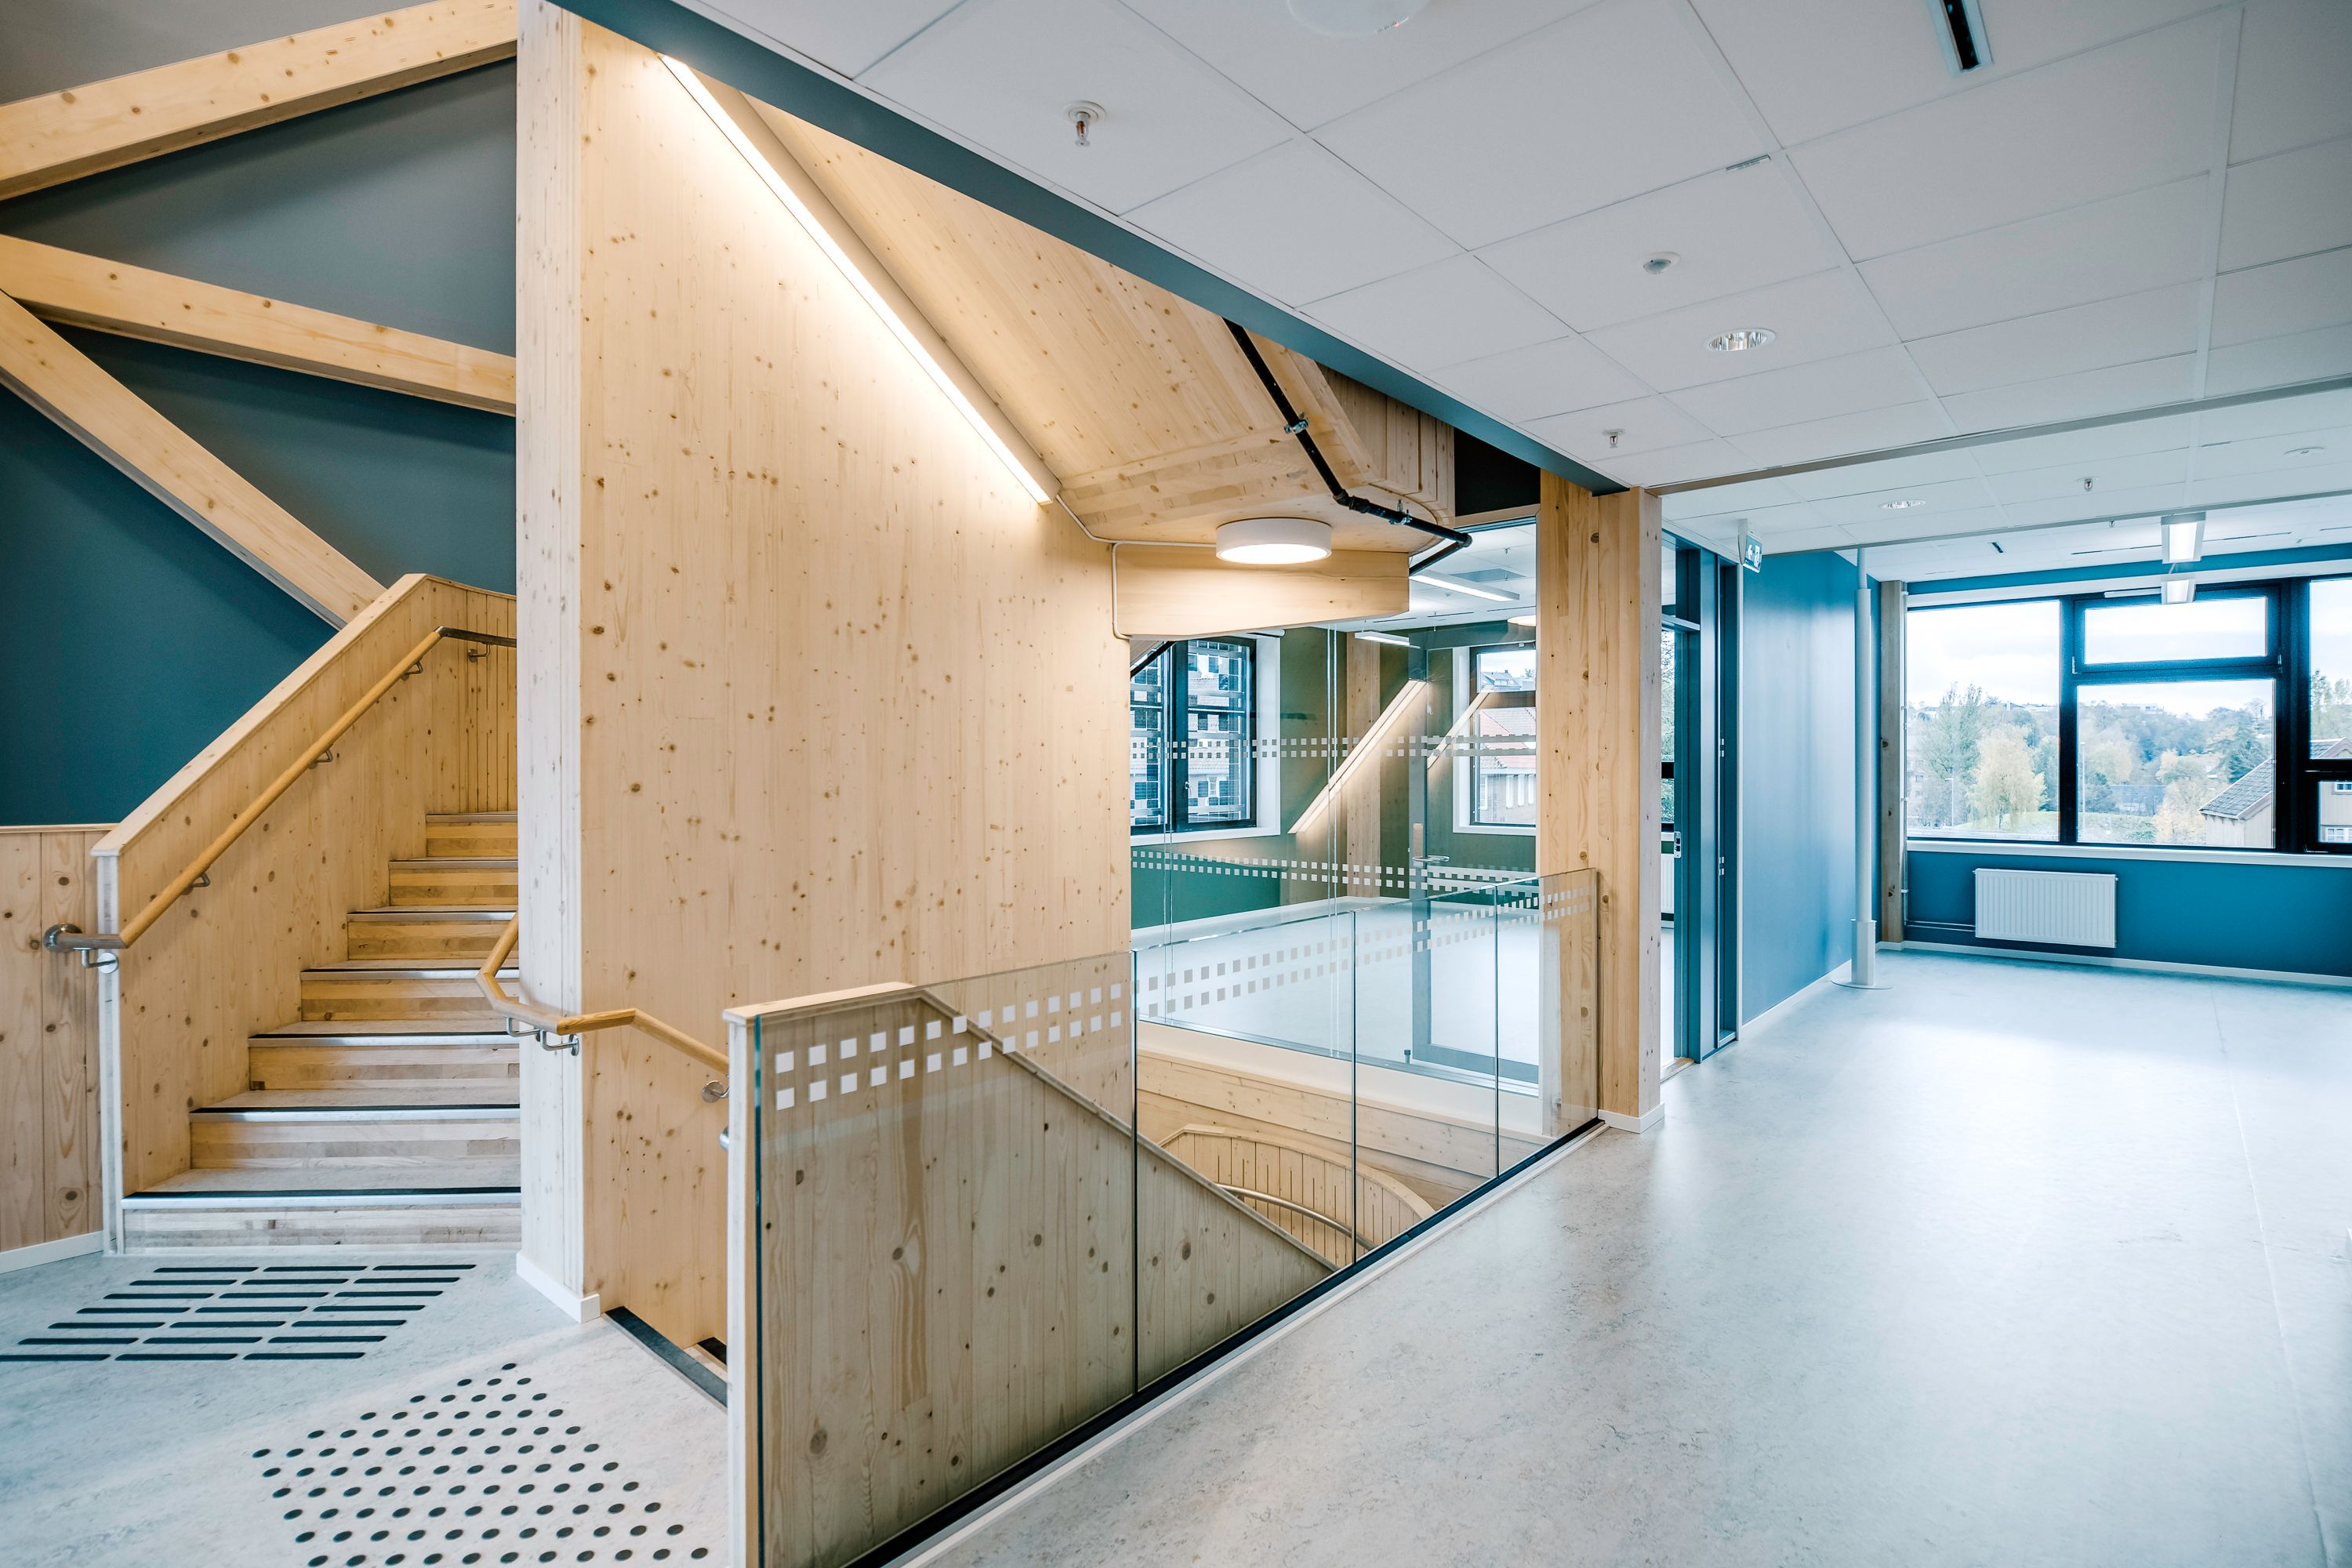 Wooden components such as beams, floors, ceilings and cladding in buildings can help increase the amount of carbon stored in the structure. Image credit - Nicola Lolli/NERO